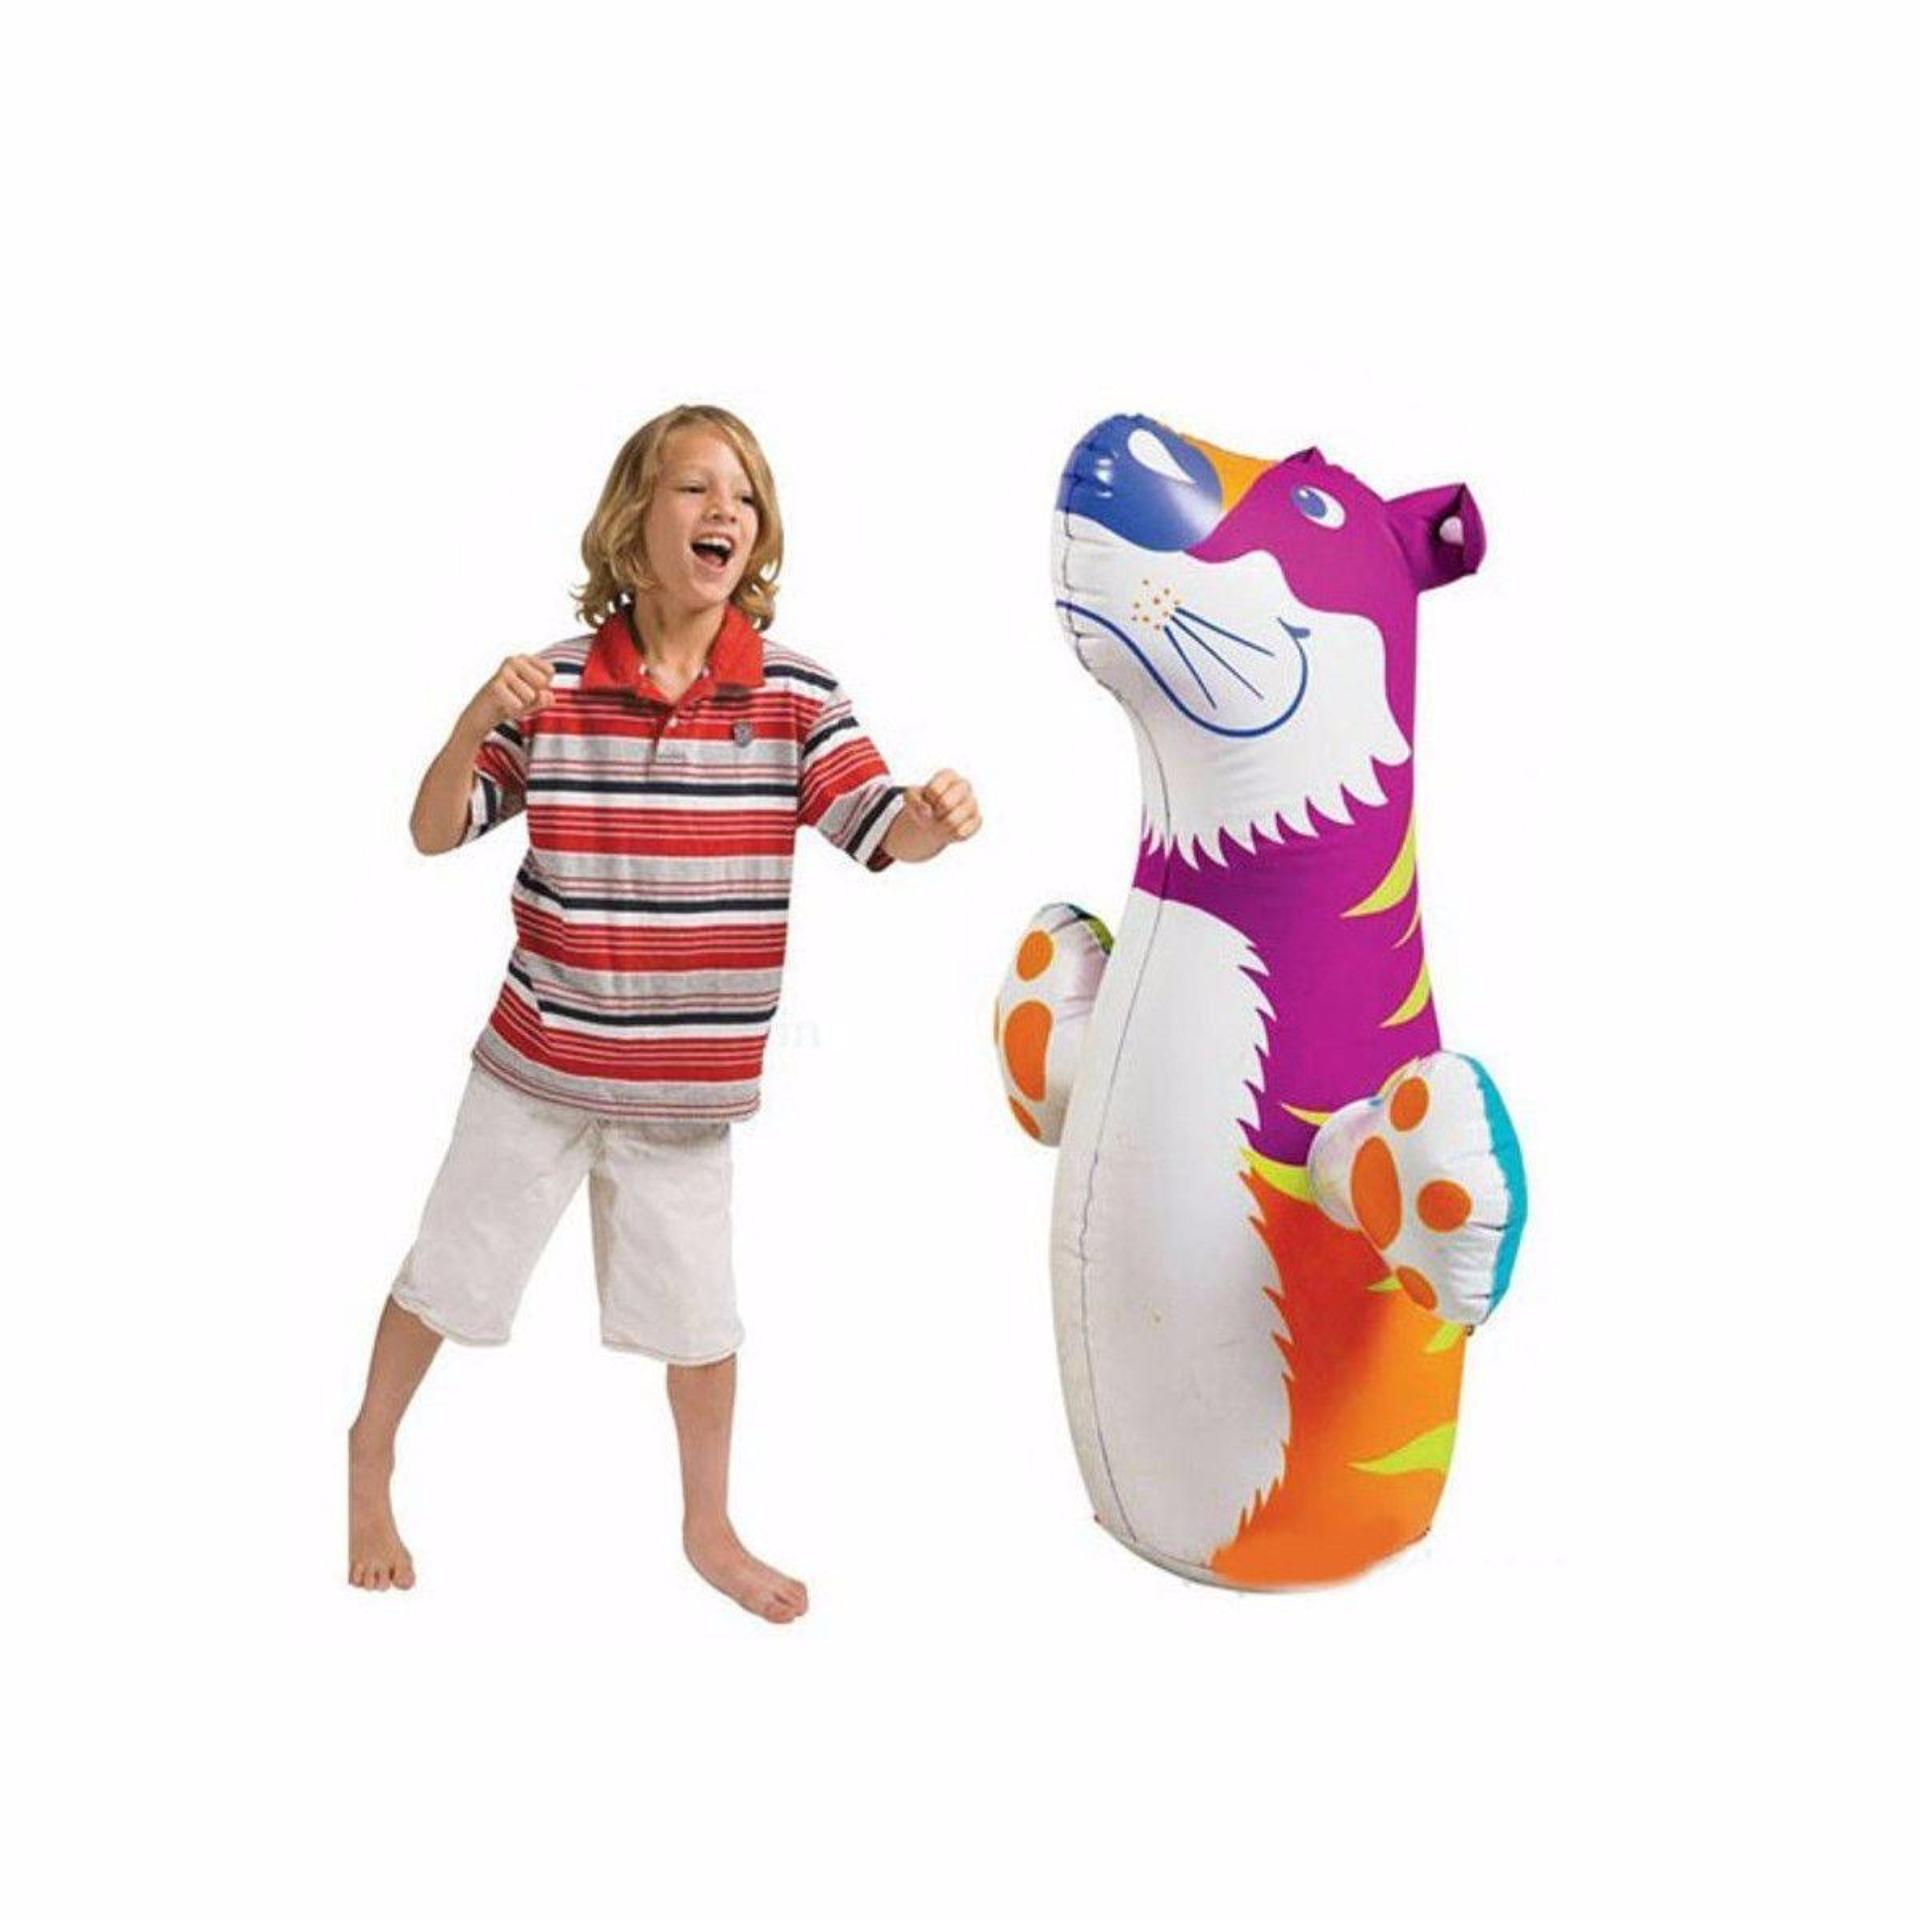 Intex Inflatable 3-D Bop Bags (tiger) Mainan Samsak Anak By Sportsite.